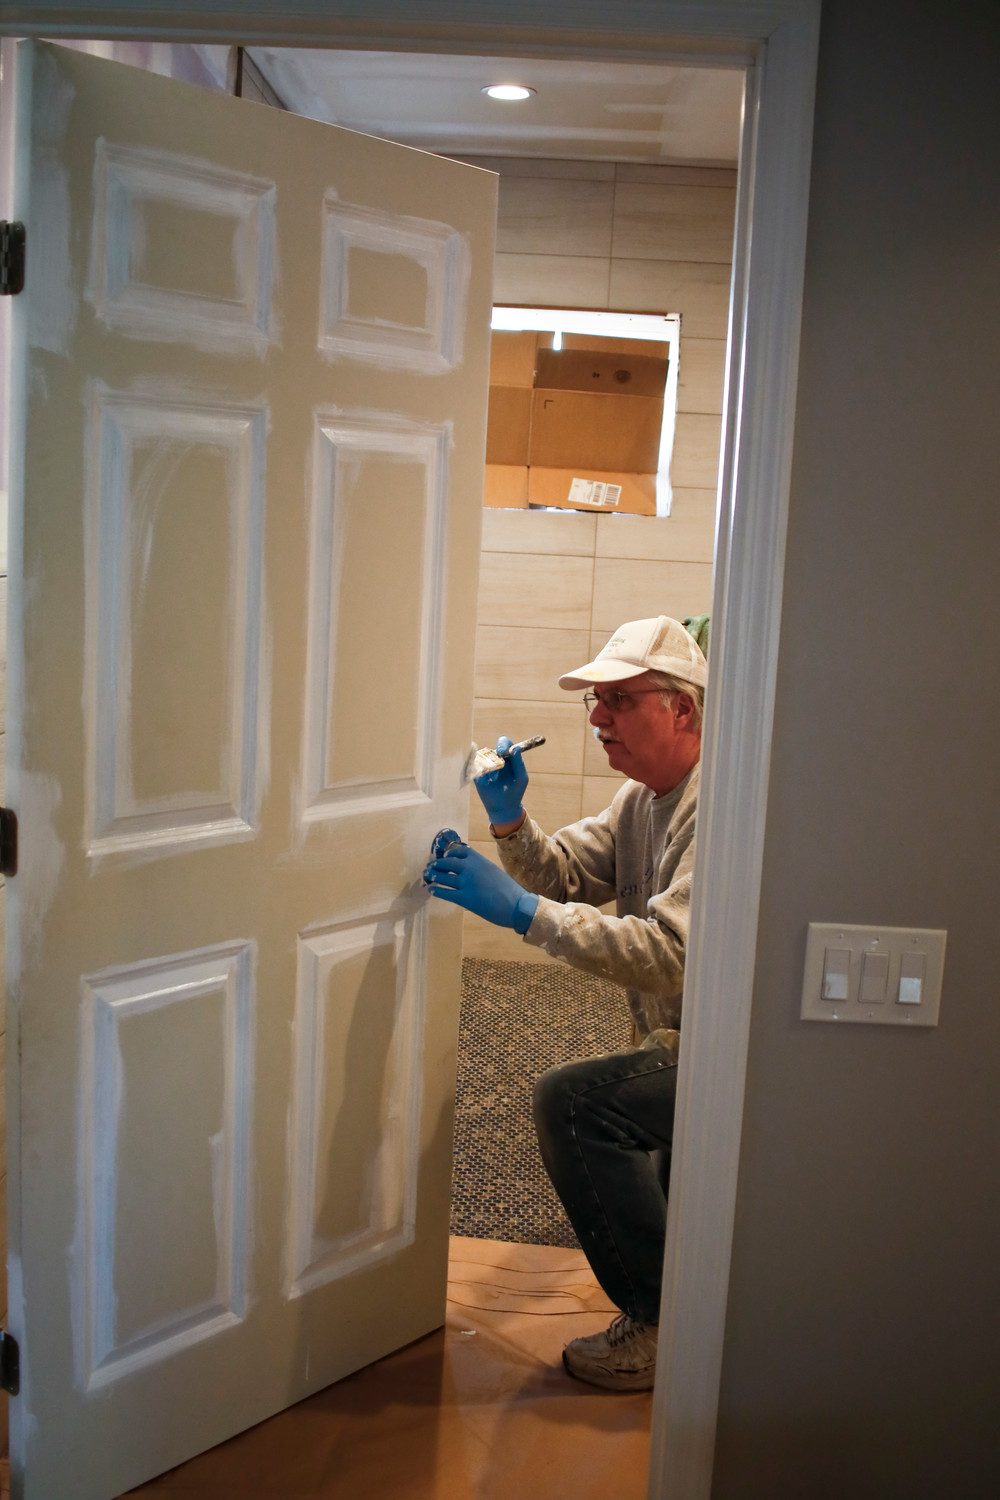 Rebuilding Together Long Island volunteer Dennis Franco painted the bathroom door.